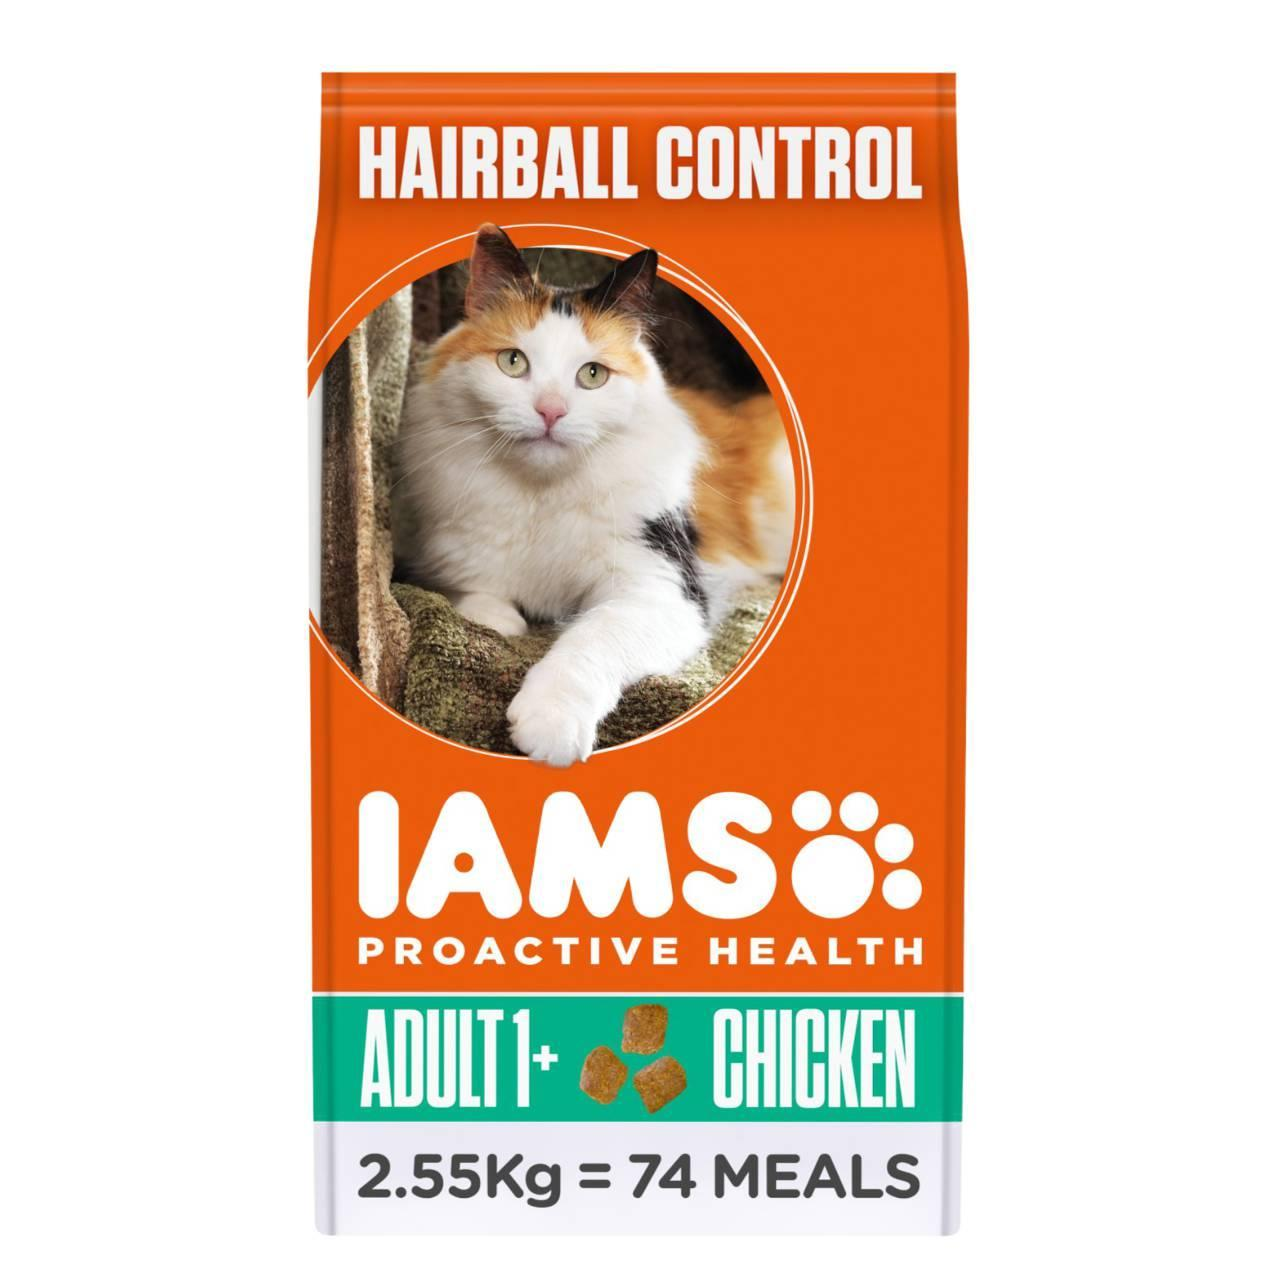 An image of Iams Adult Dry Cat Food Hairball